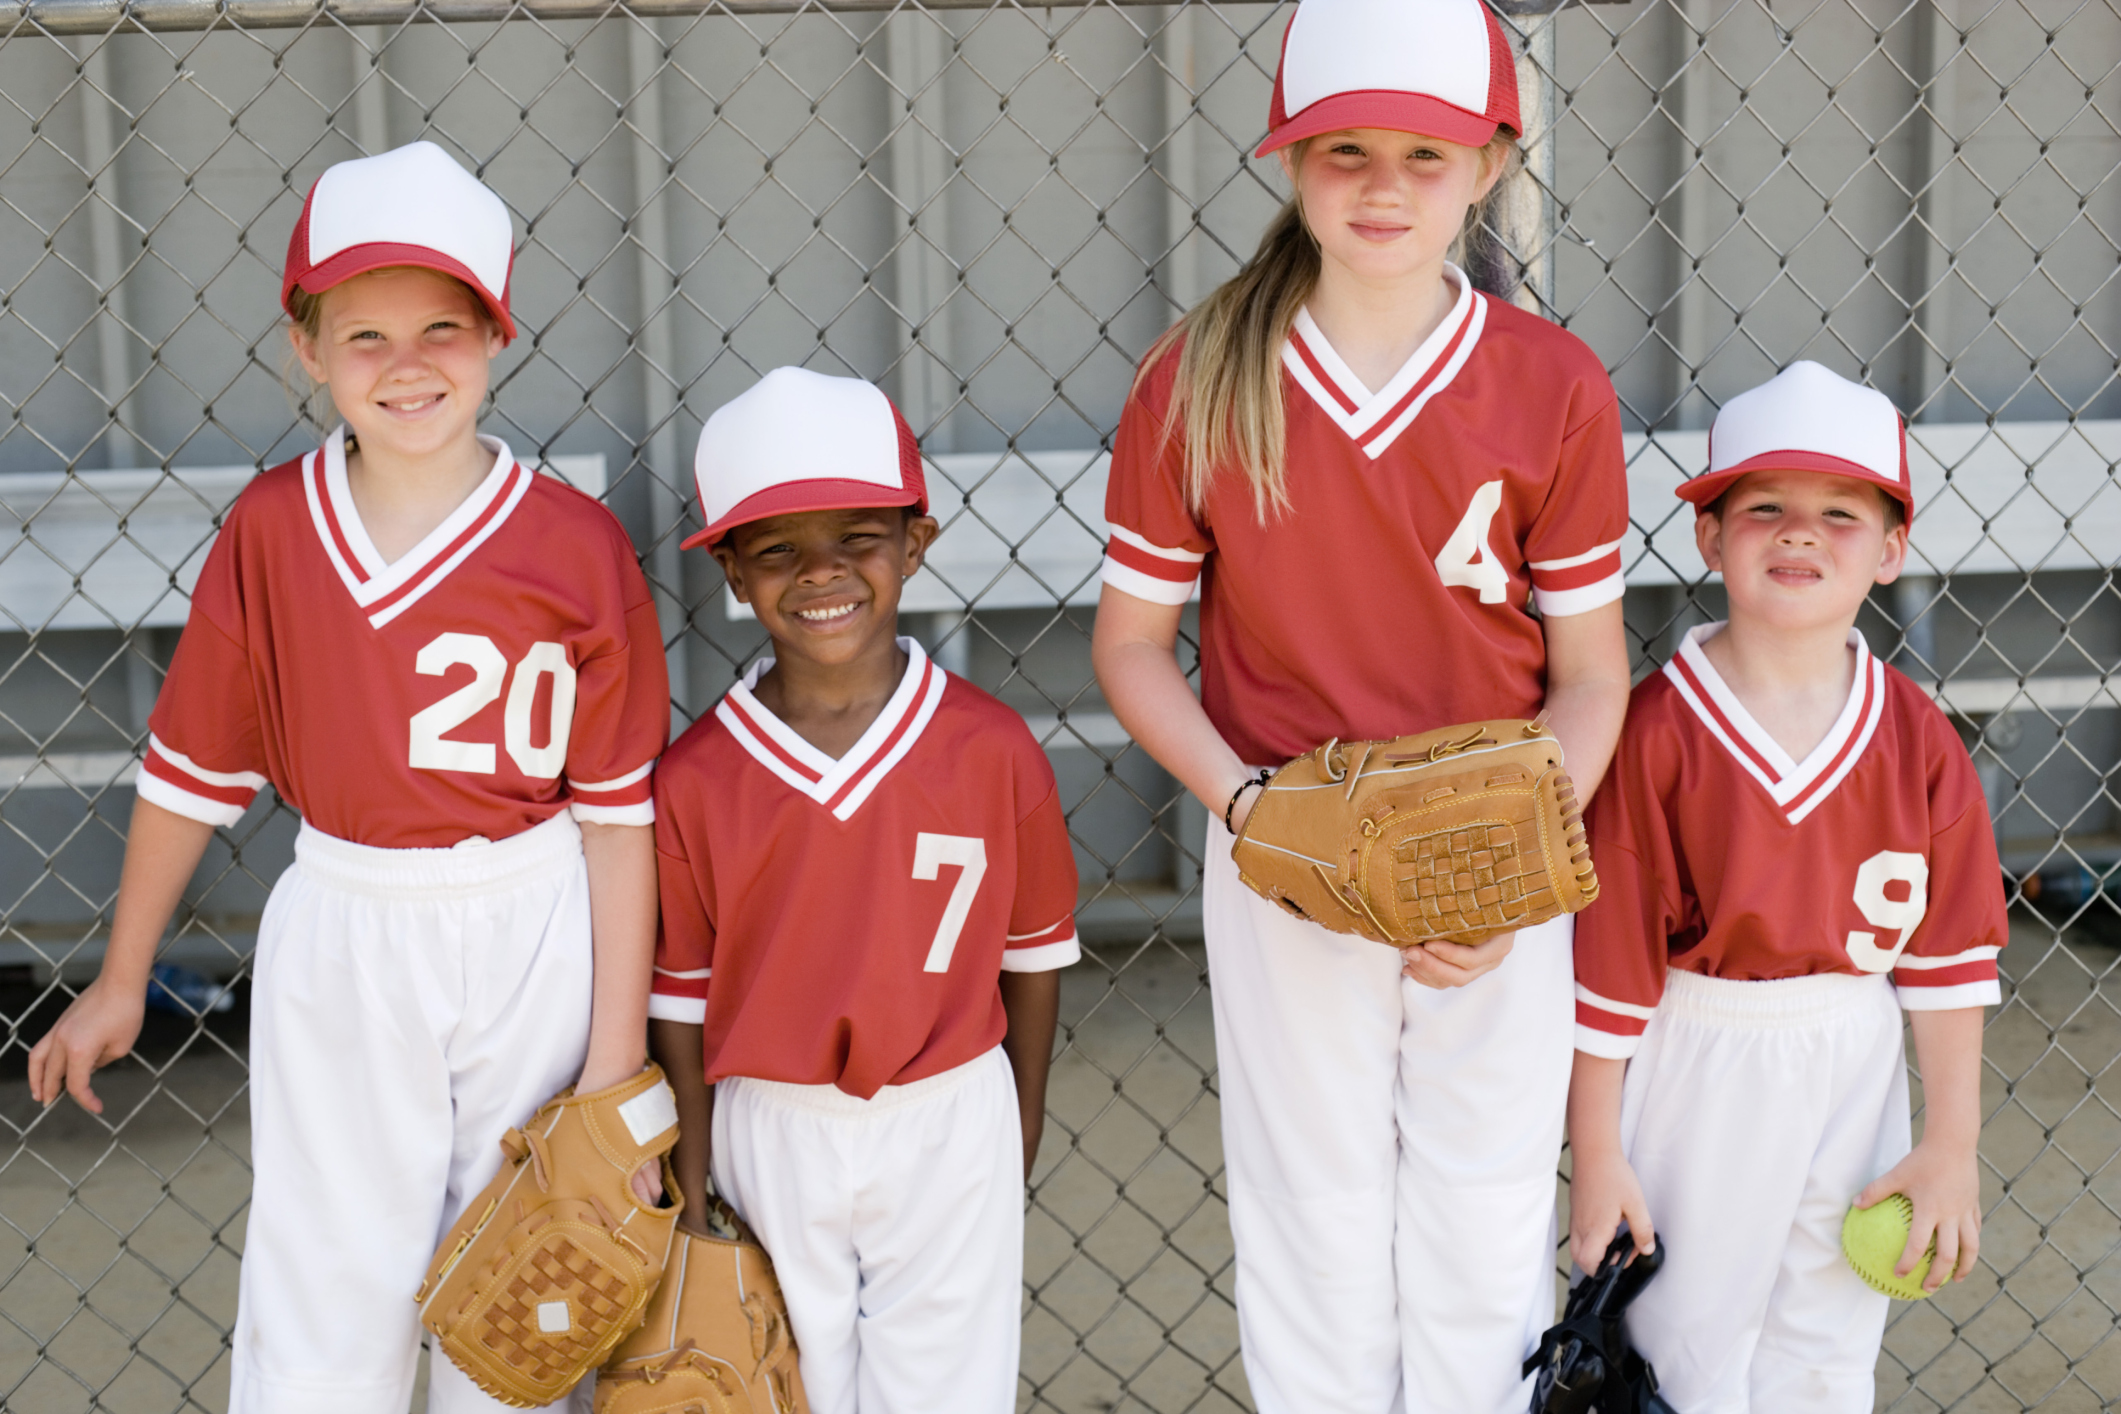 Funny Awards for Kids Sports Teams